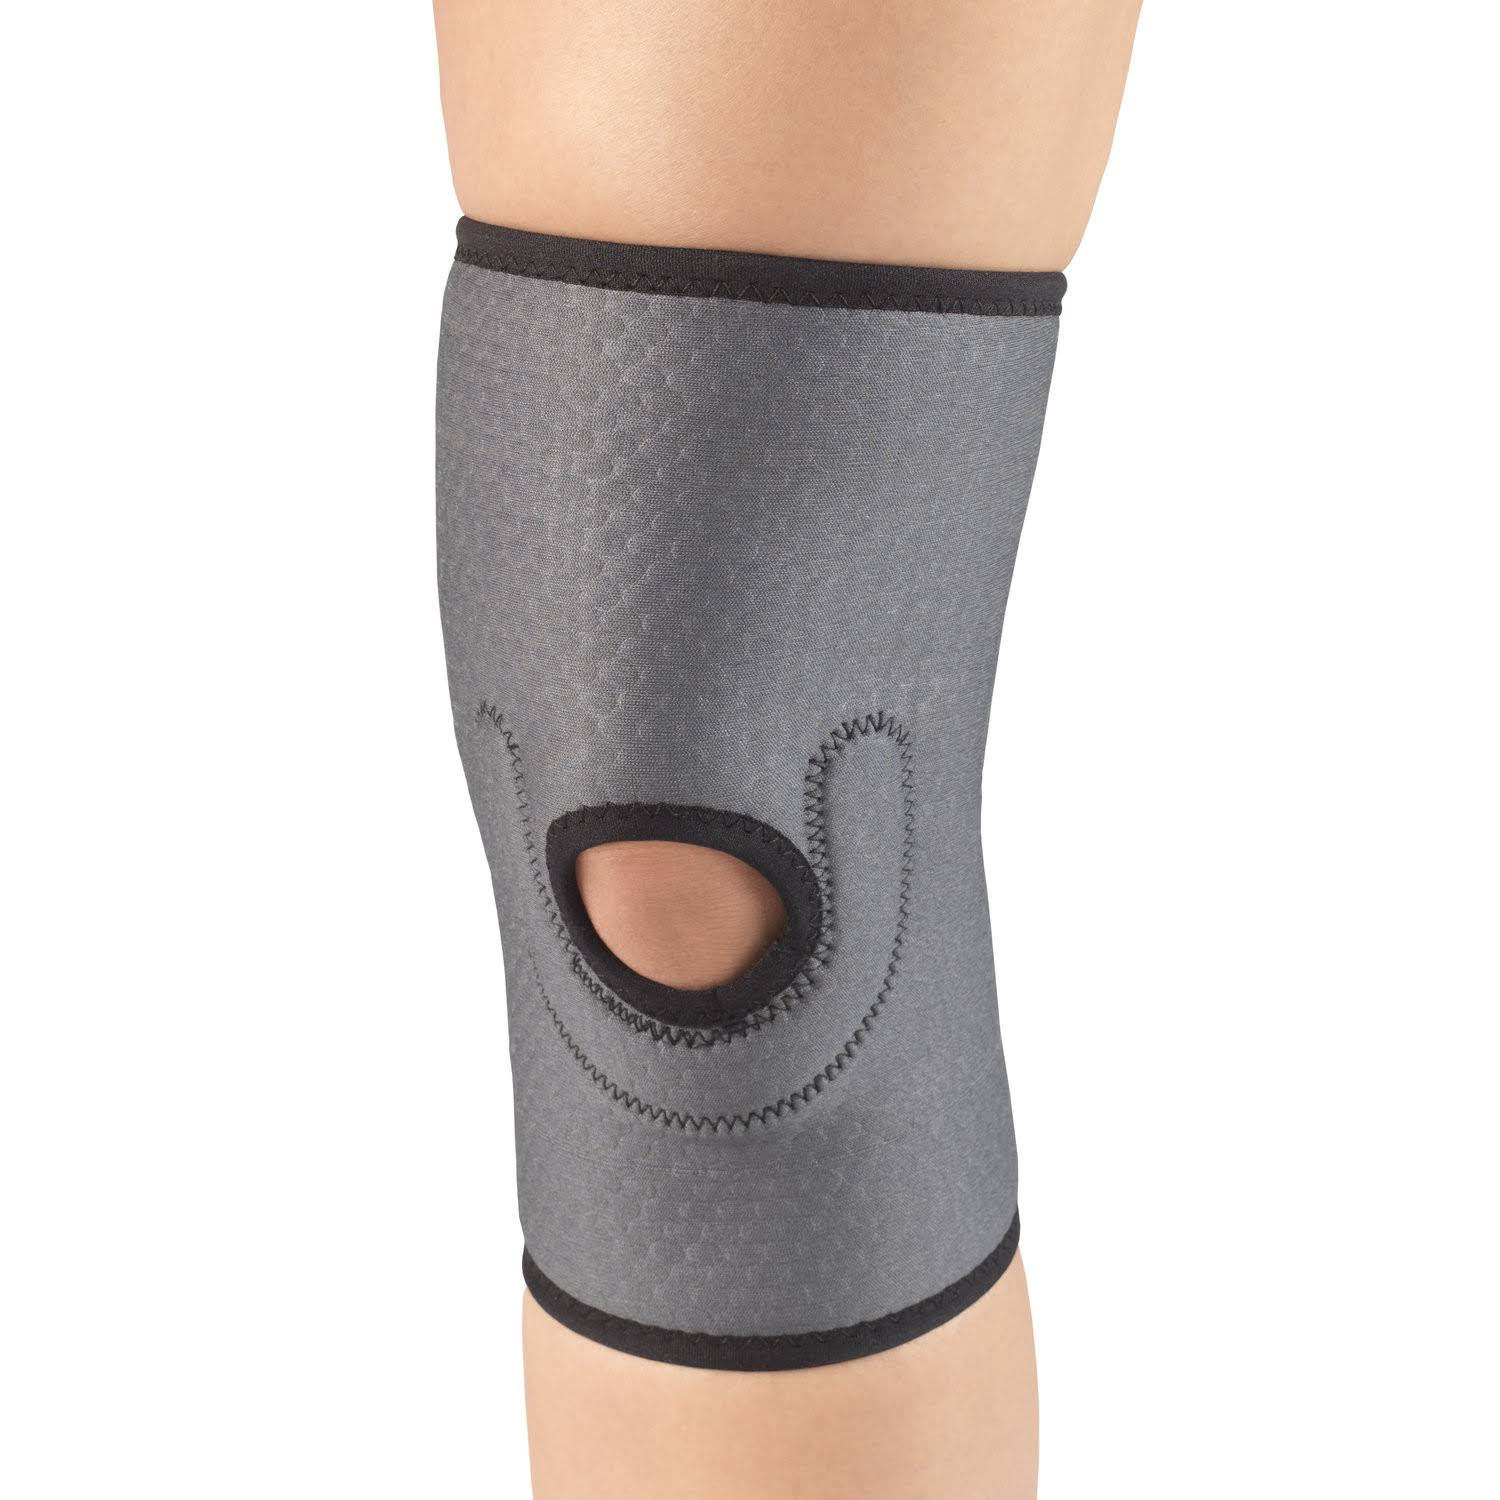 Champion Airmesh Knee Support with Stabilizer Pad, Grey, Small, Gray